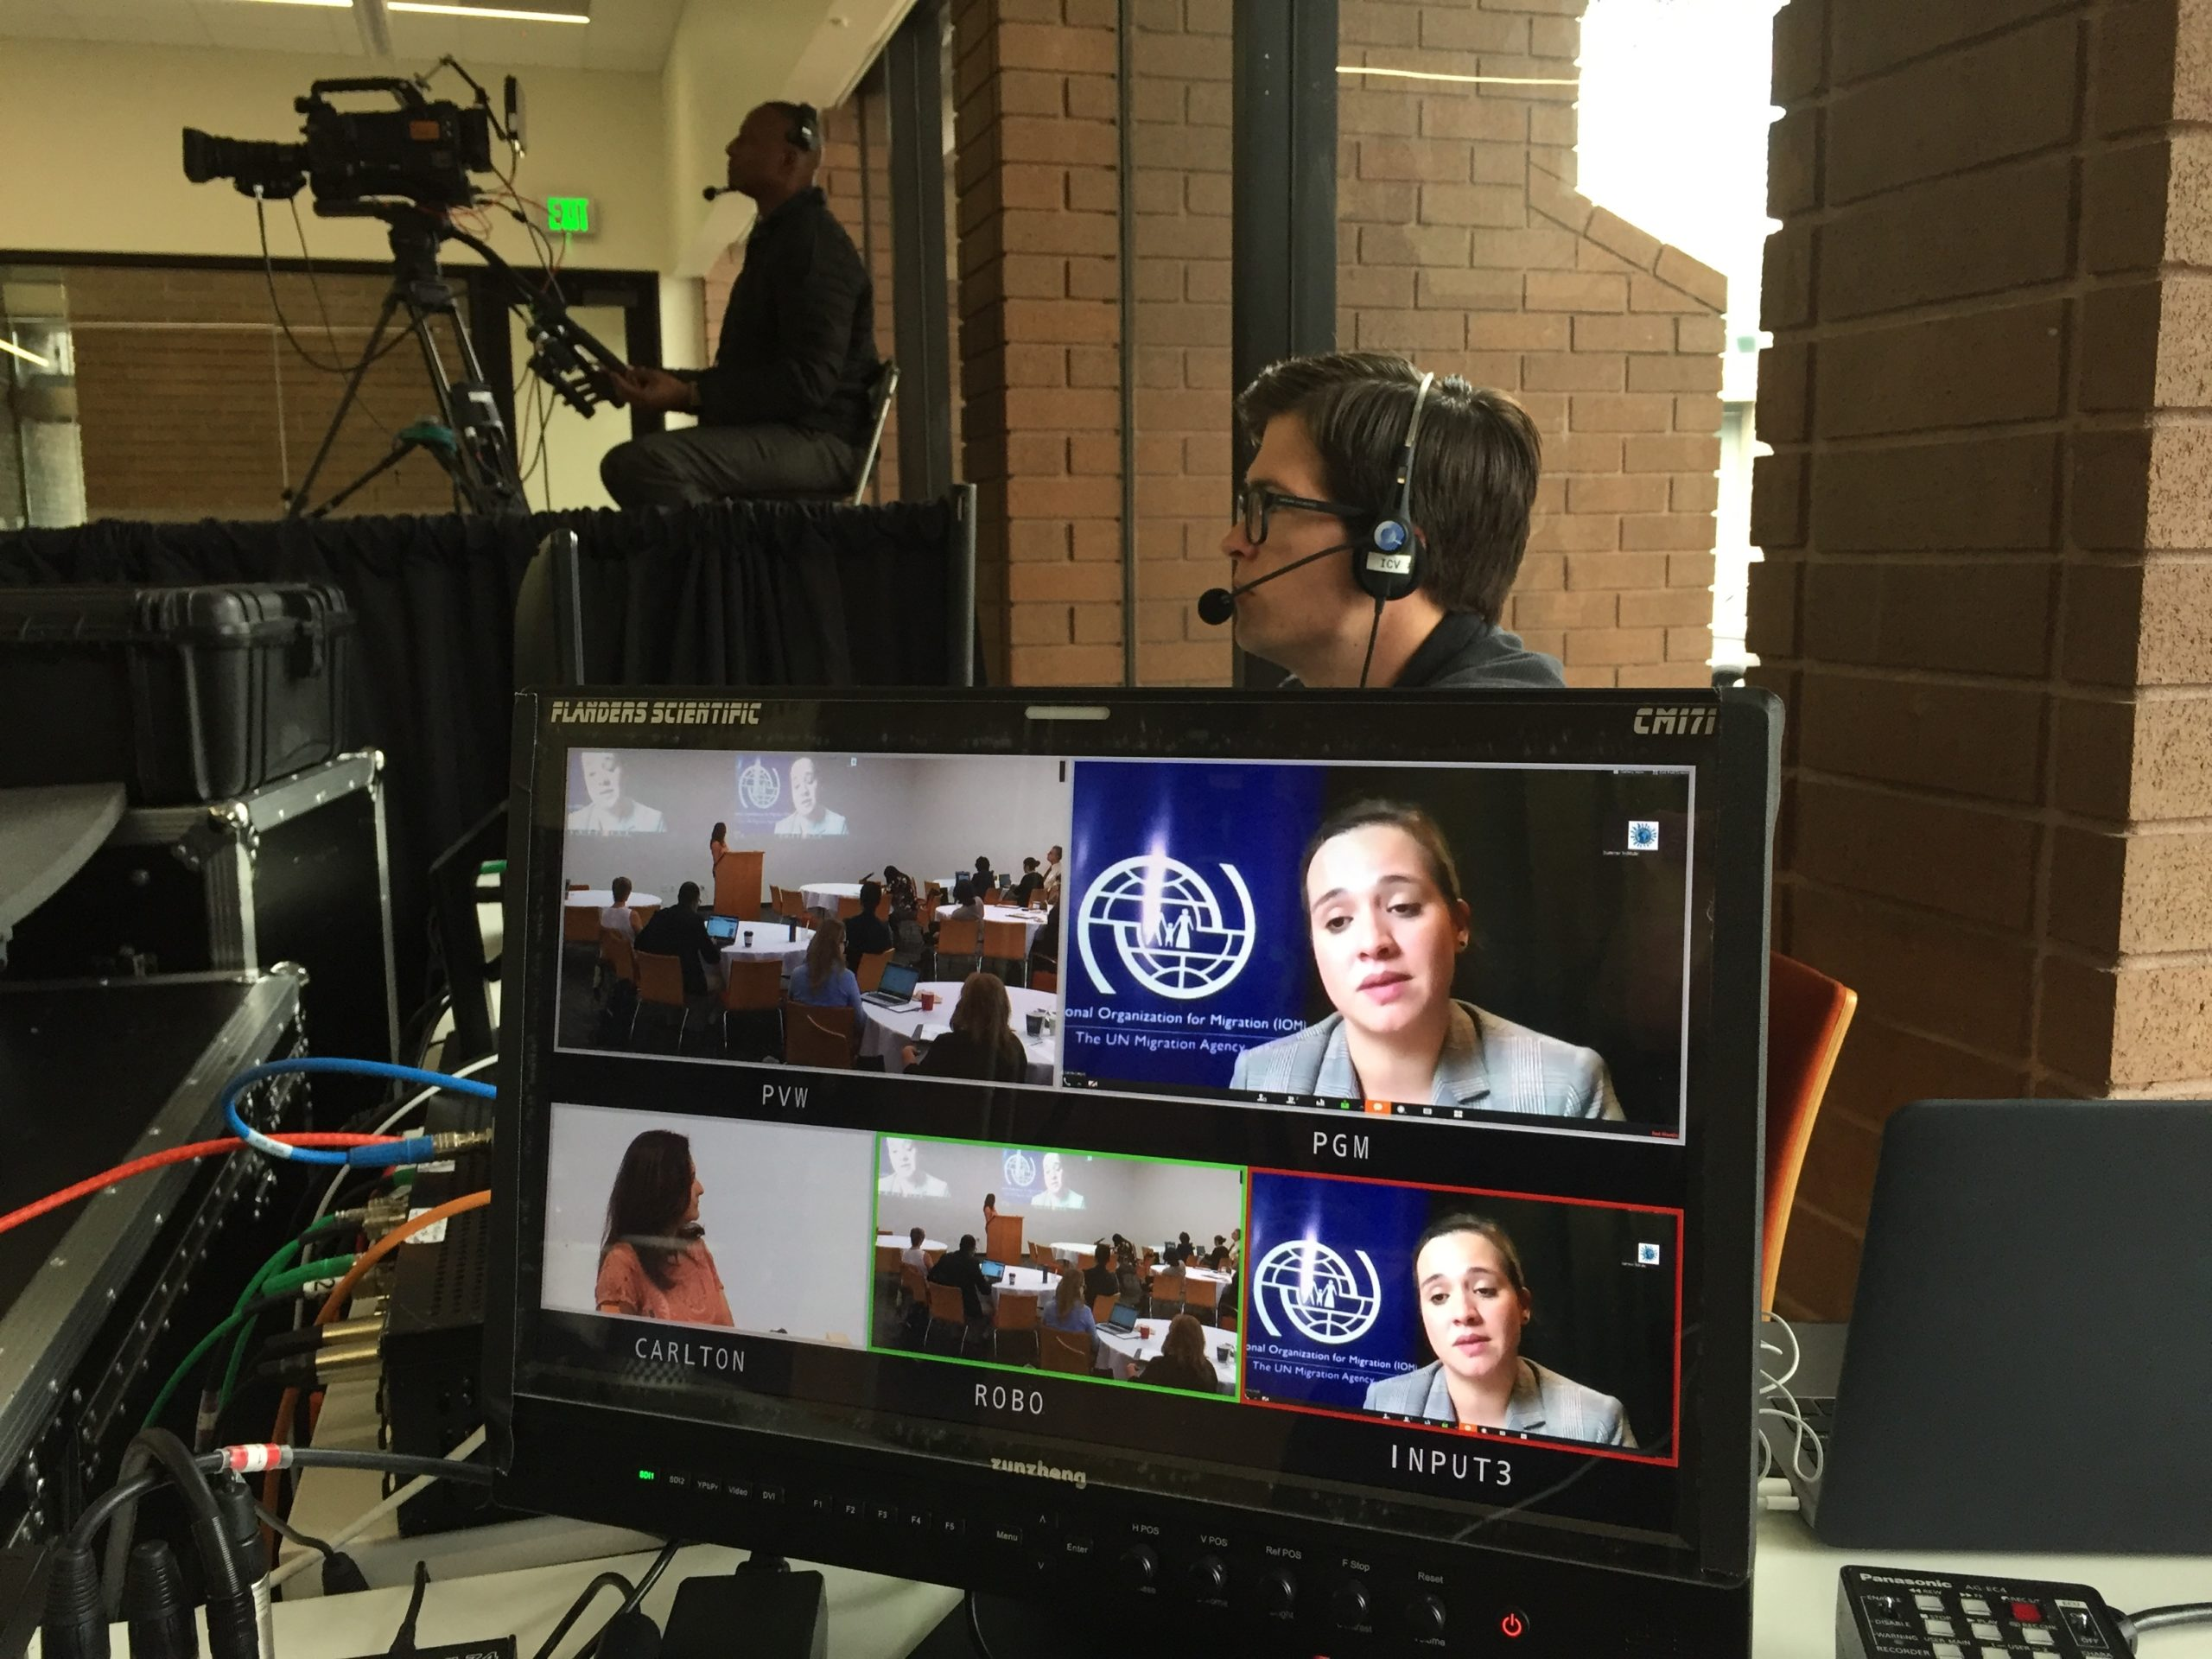 Berkeley, CA.  ICV Digital Media live streaming for Global Health and Immigration